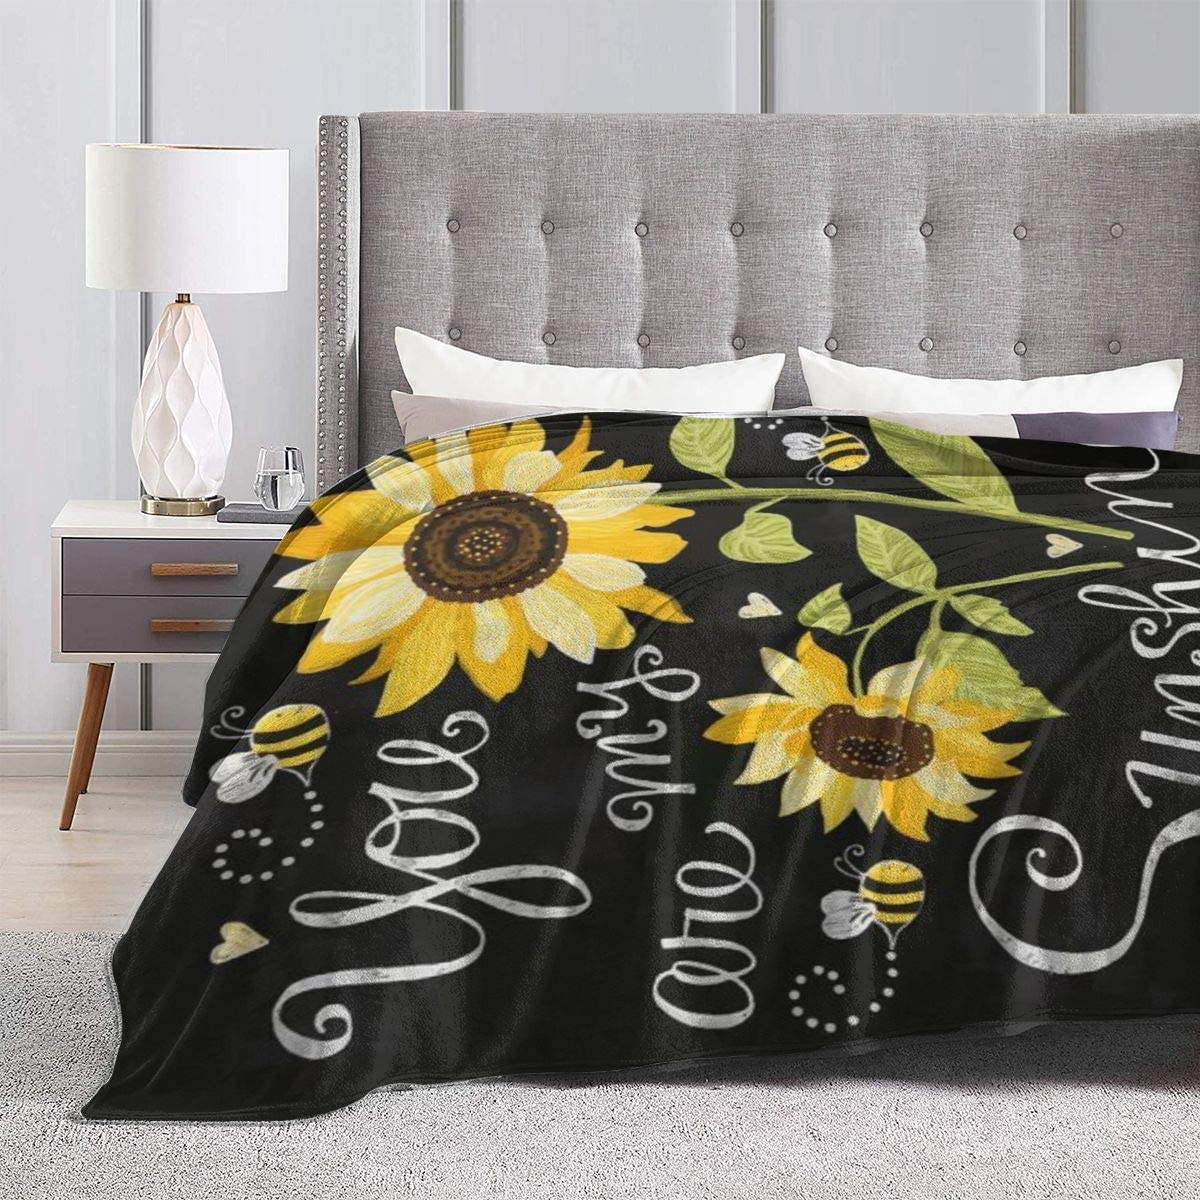 You are My Sunflower Sunshine Bed Blanket Plush Blanket Super Soft Warm Cozy Luxury Lightweight Throw Blanket Microfiber Reversible Blanket for Bed Couch